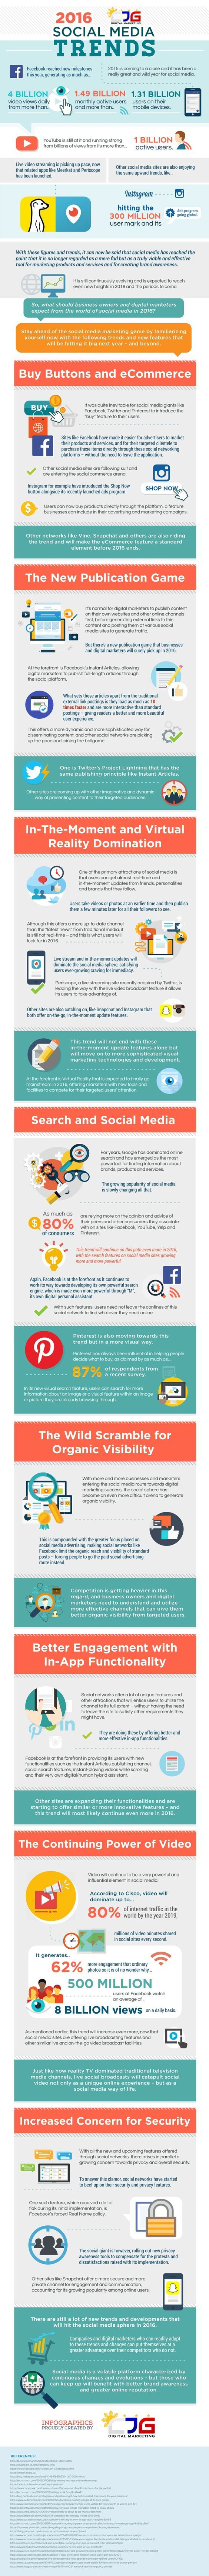 Social Media Trends for 2016  Want to know which methods will rule Social Media this year? Check out this infographic, which discusses 2016 Social Media Trends! Let us know what you think of these trends in the comments below.